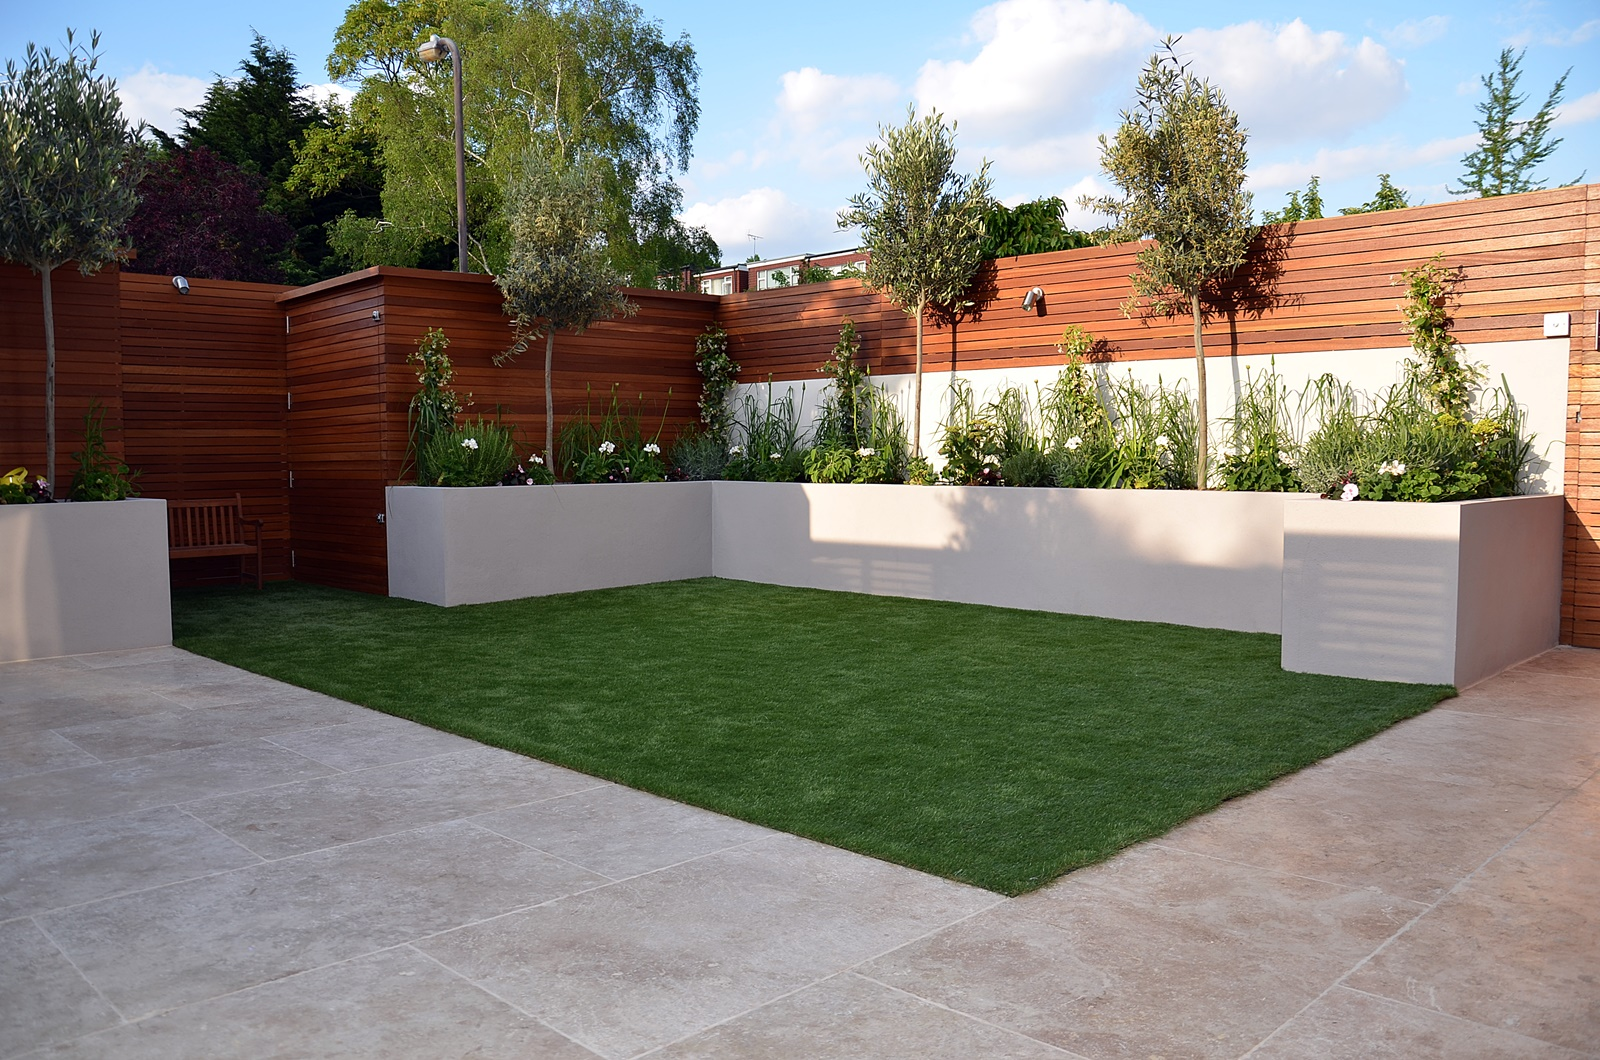 Modern garden design fulham chelsea clapham battersea for Garden design ideas 2016